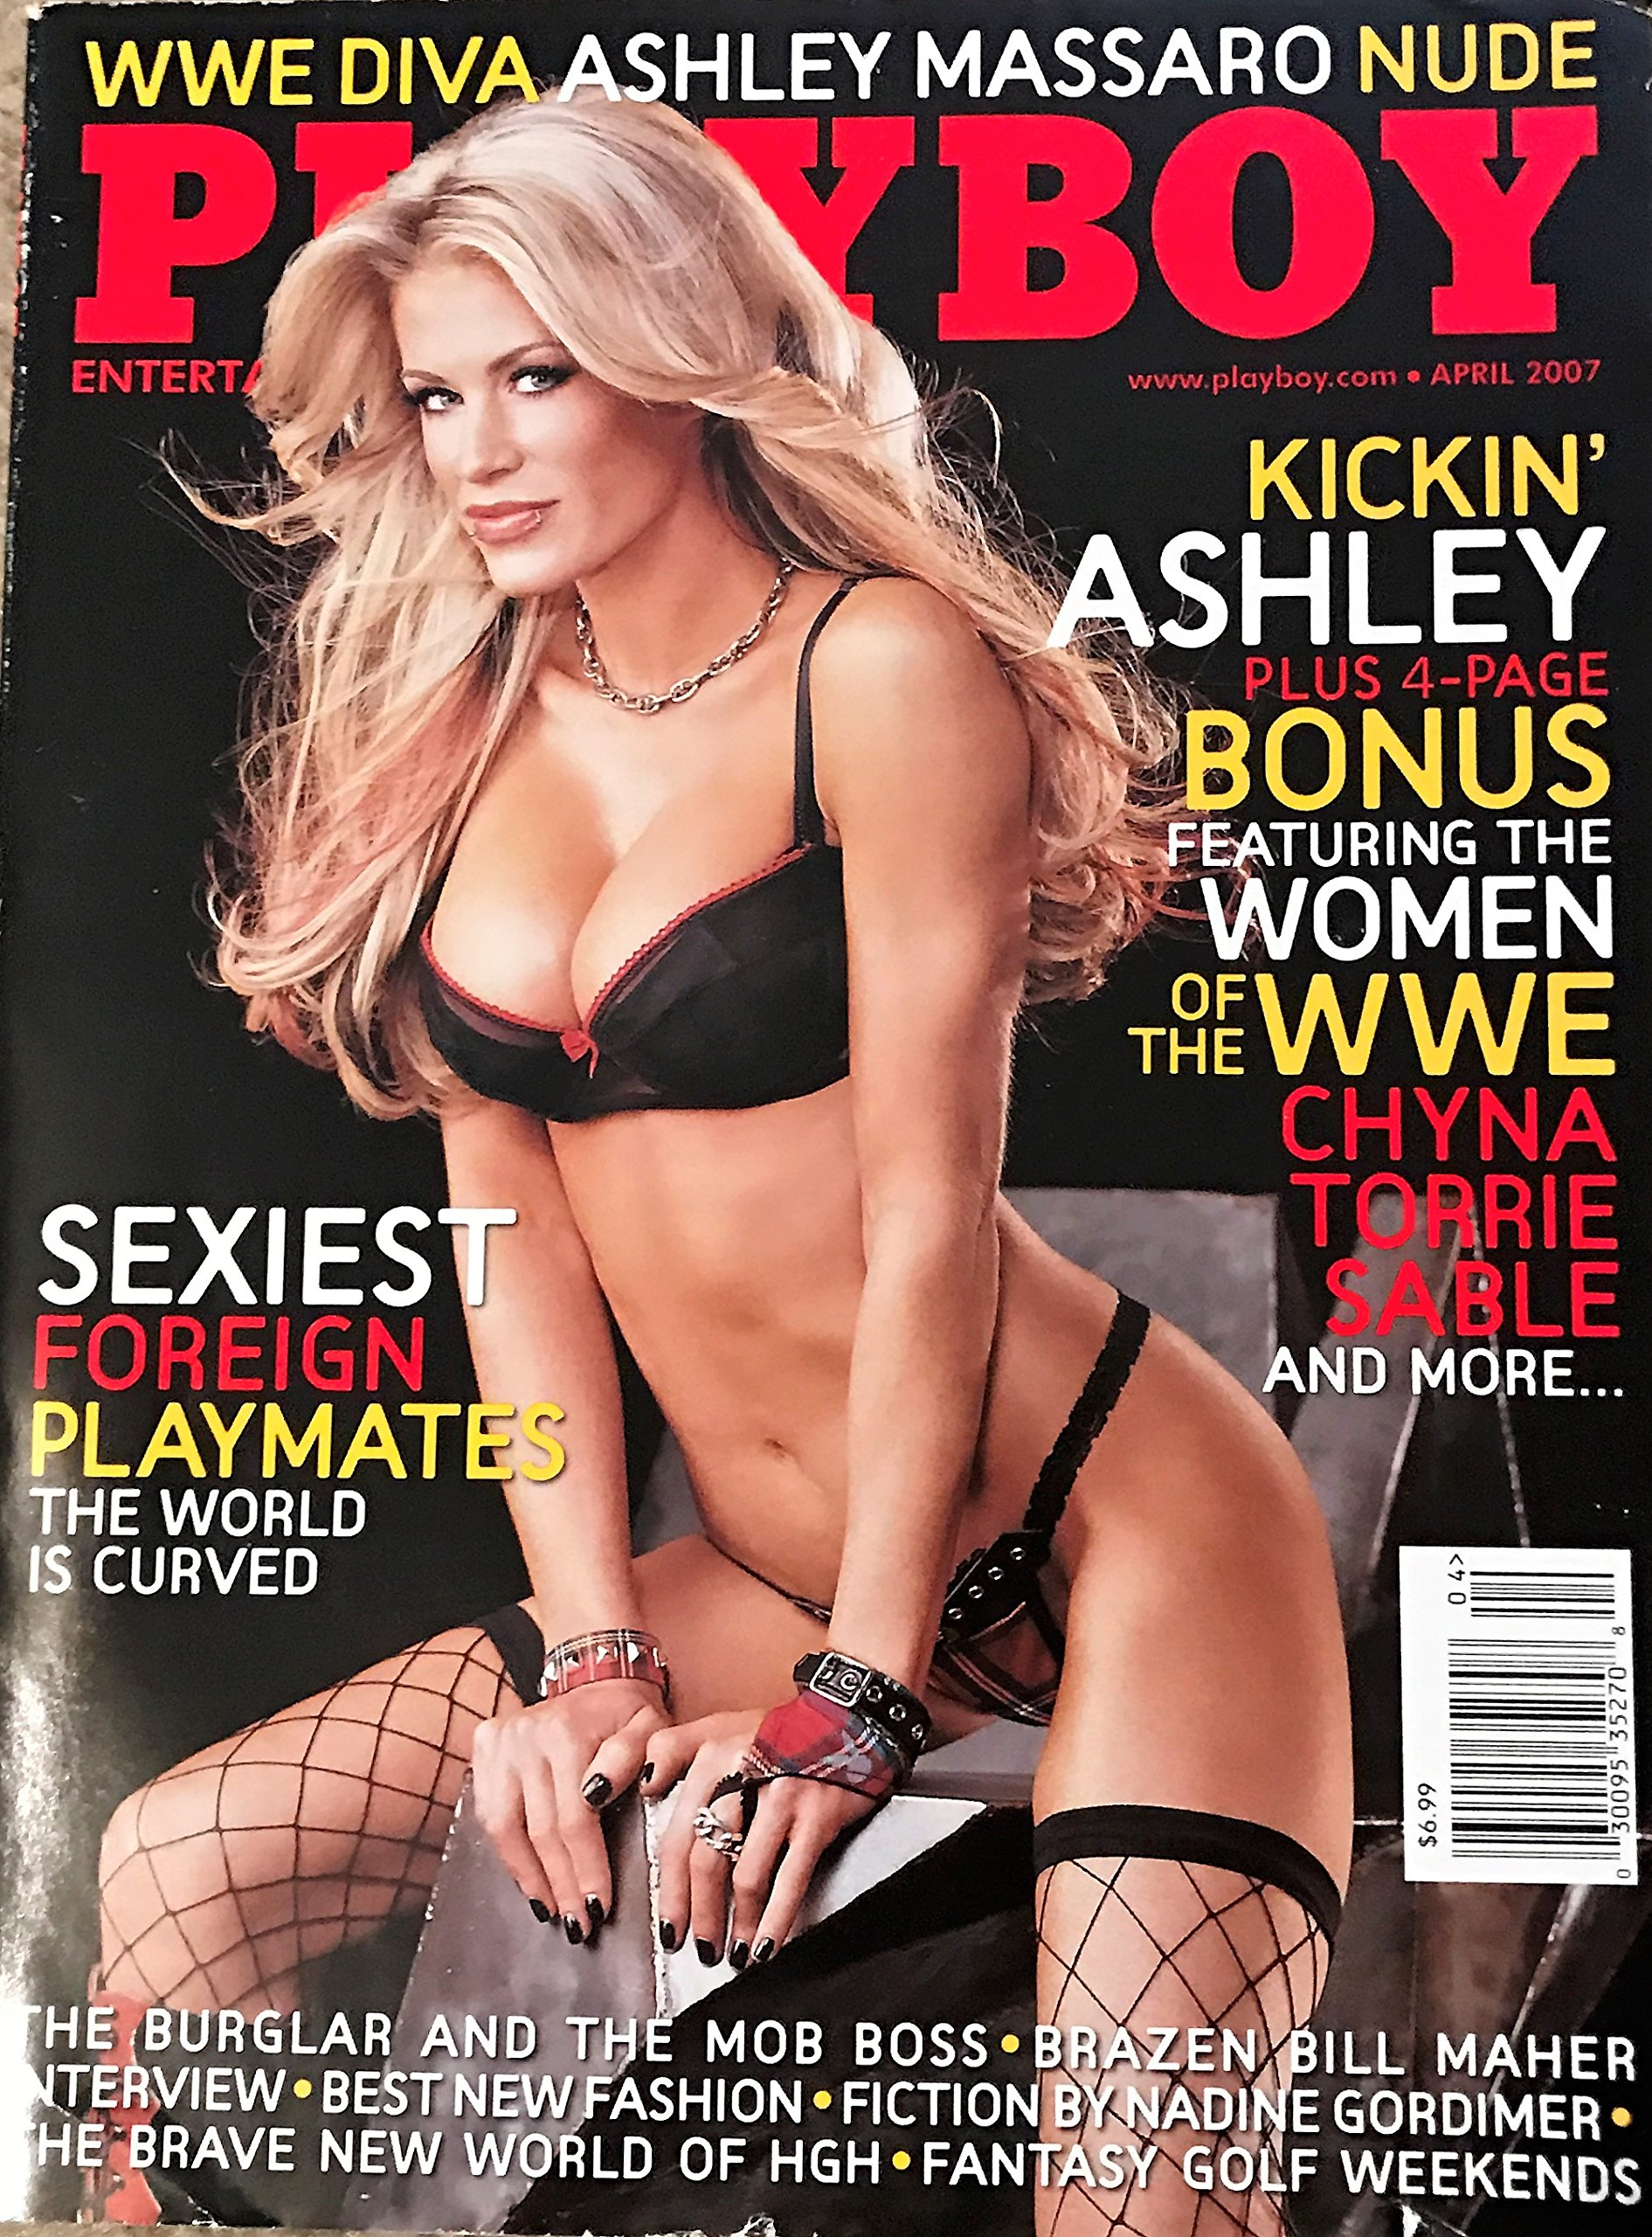 Playboy Adult Magazine, April 2007 (WWE Diva Ashley Massaro on the Cover)  Single Issue Magazine – 2007